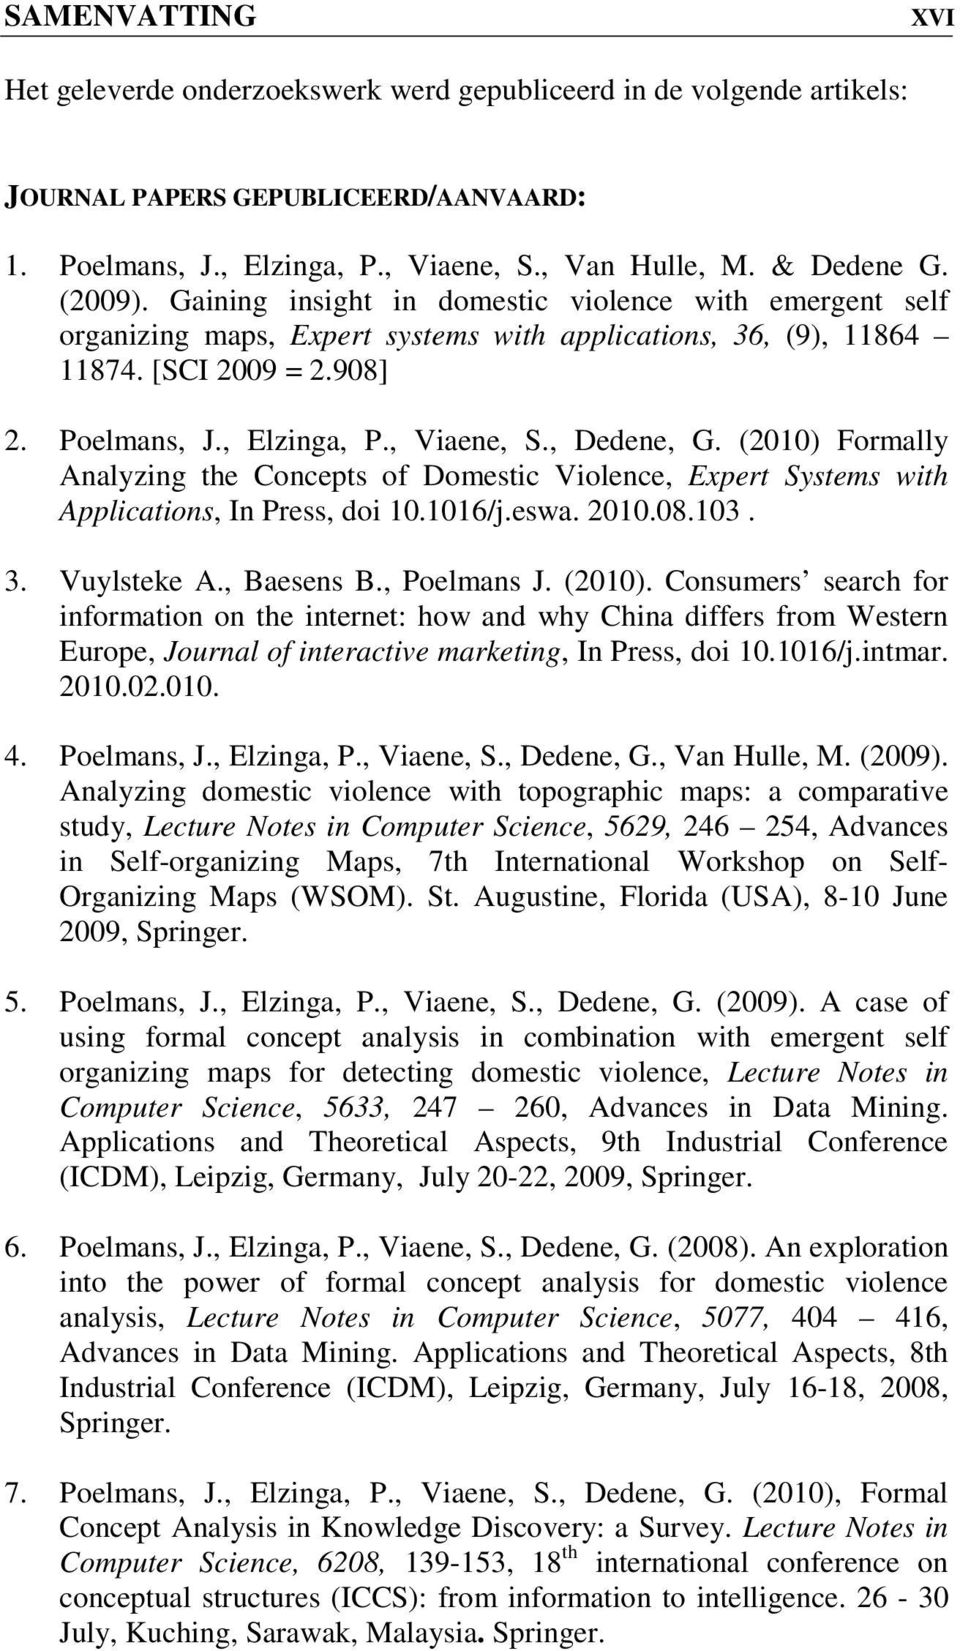 , Dedene, G. (2010) Formally Analyzing the Concepts of Domestic Violence, Expert Systems with Applications, In Press, doi 10.1016/j.eswa. 2010.08.103. 3. Vuylsteke A., Baesens B., Poelmans J. (2010). Consumers search for information on the internet: how and why China differs from Western Europe, Journal of interactive marketing, In Press, doi 10.